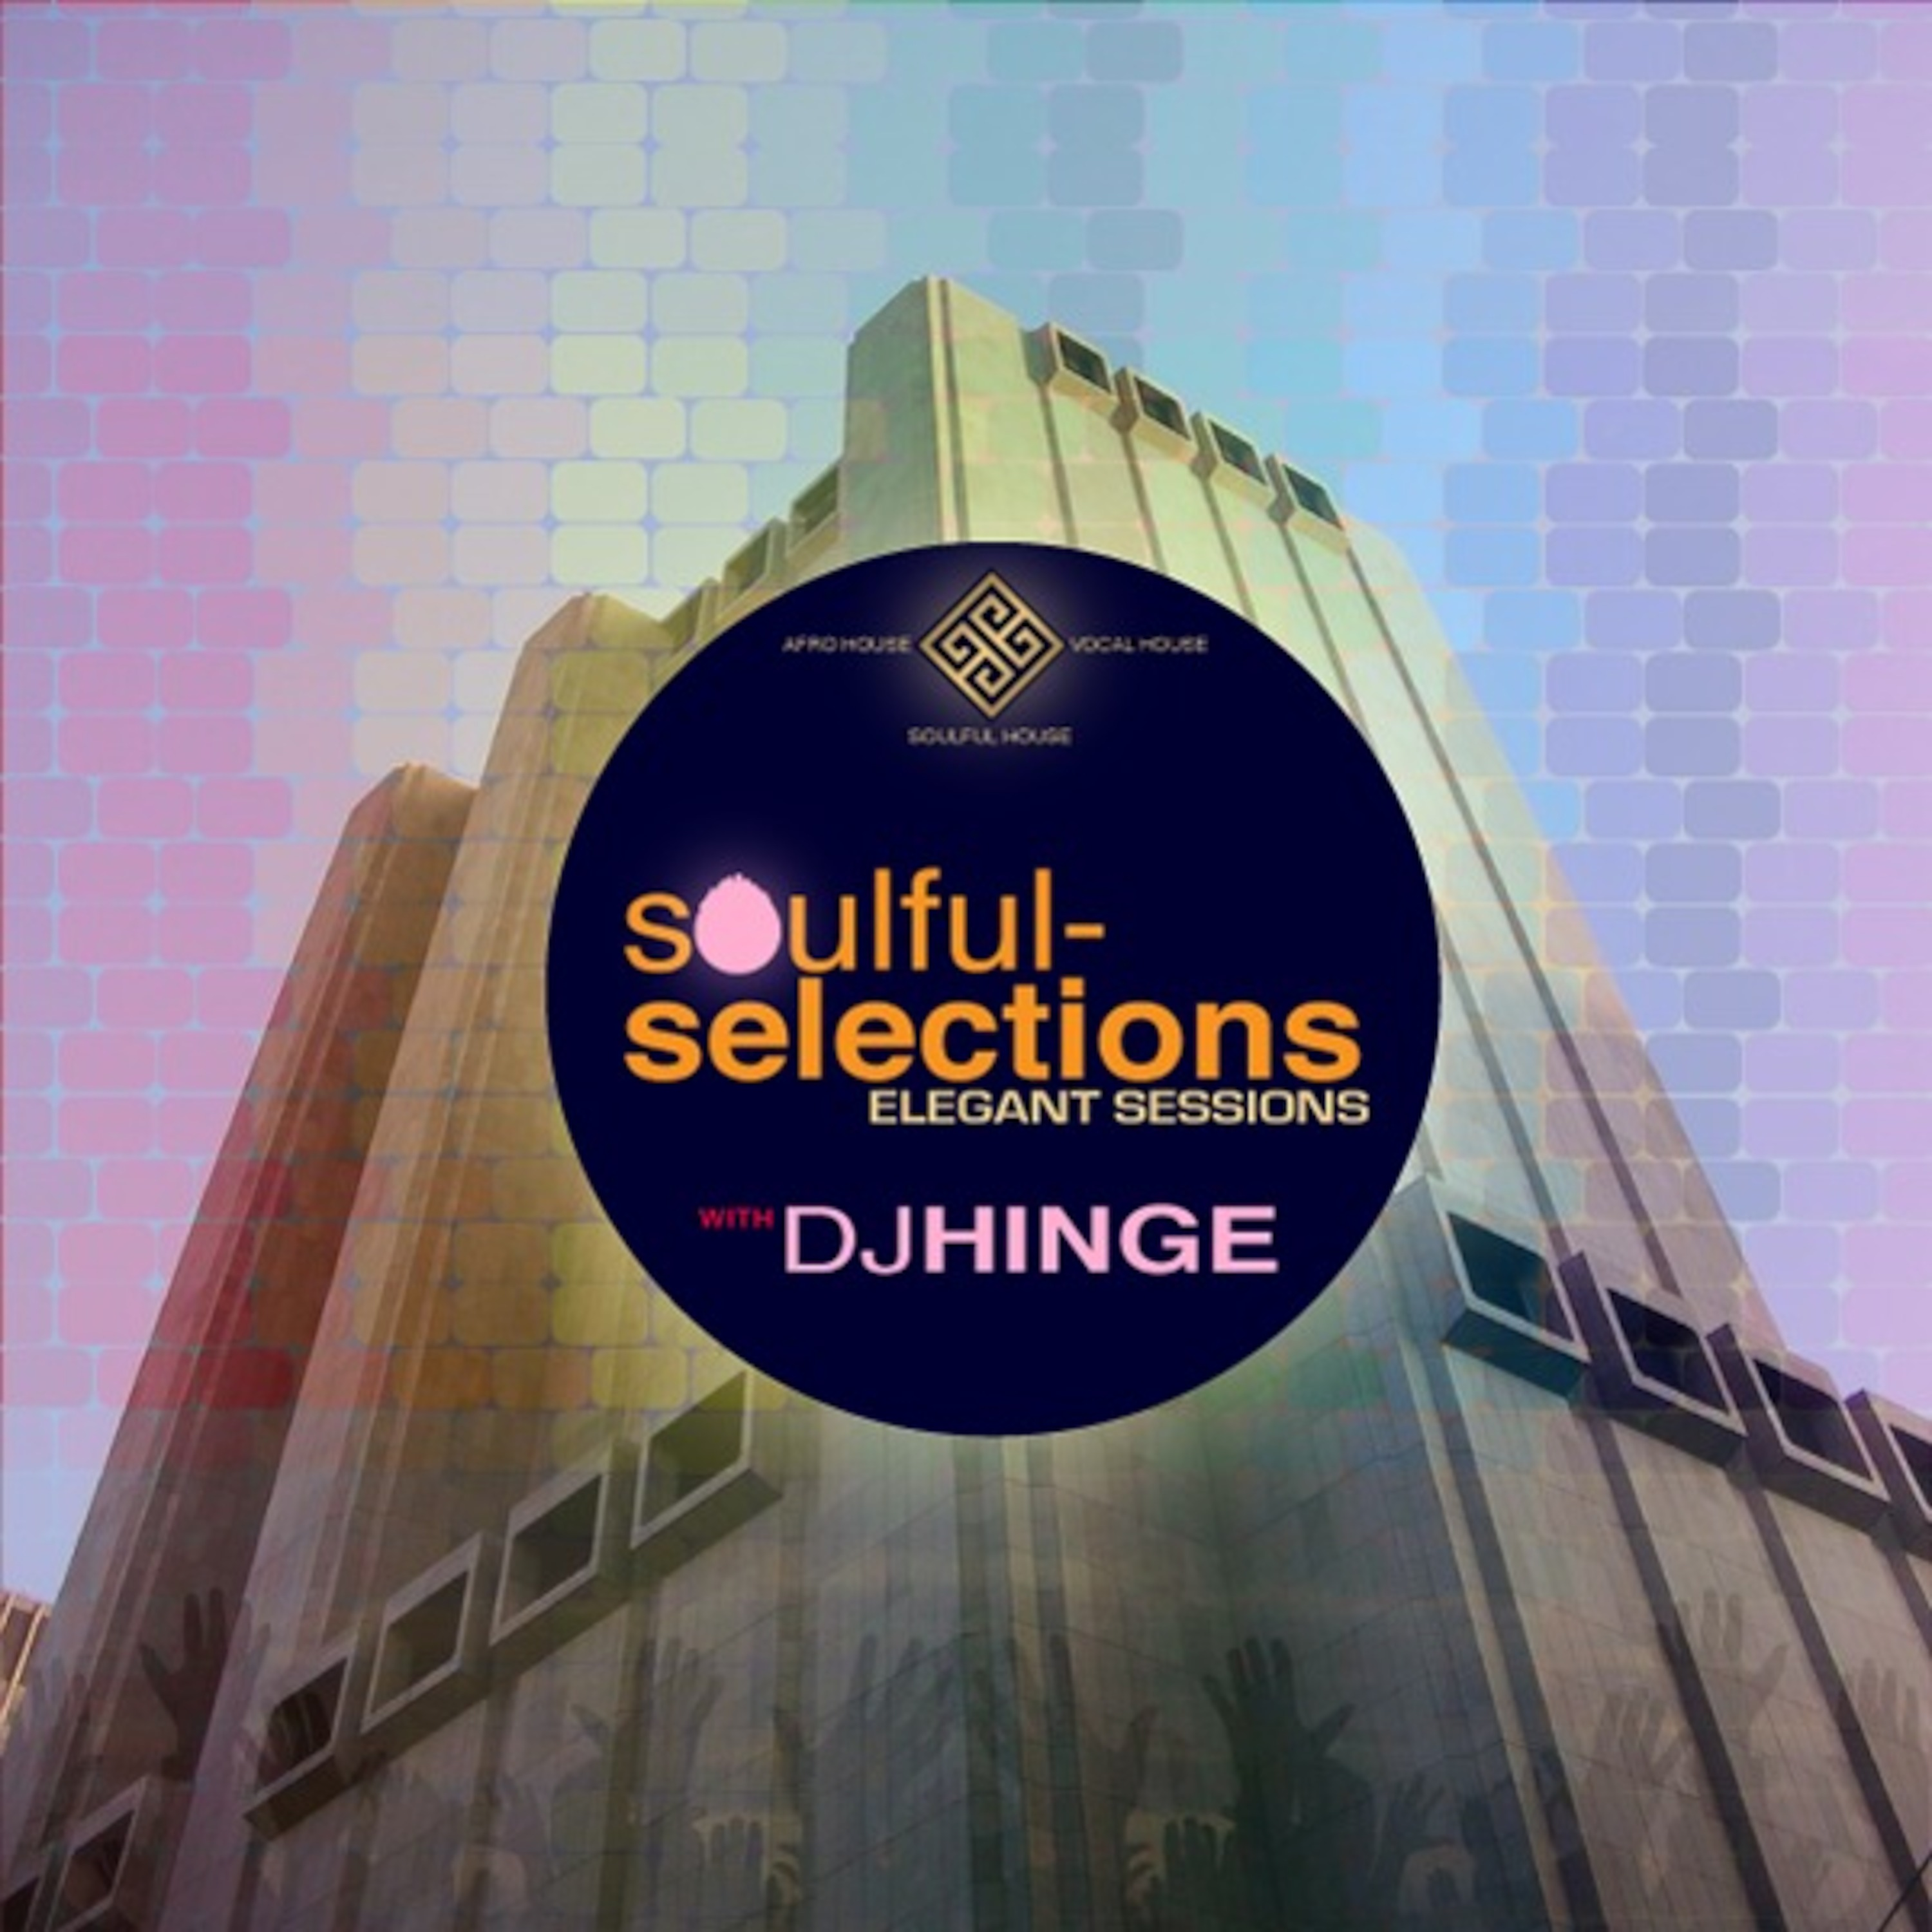 Soulful-Selections Elegant Session for 07-26-20